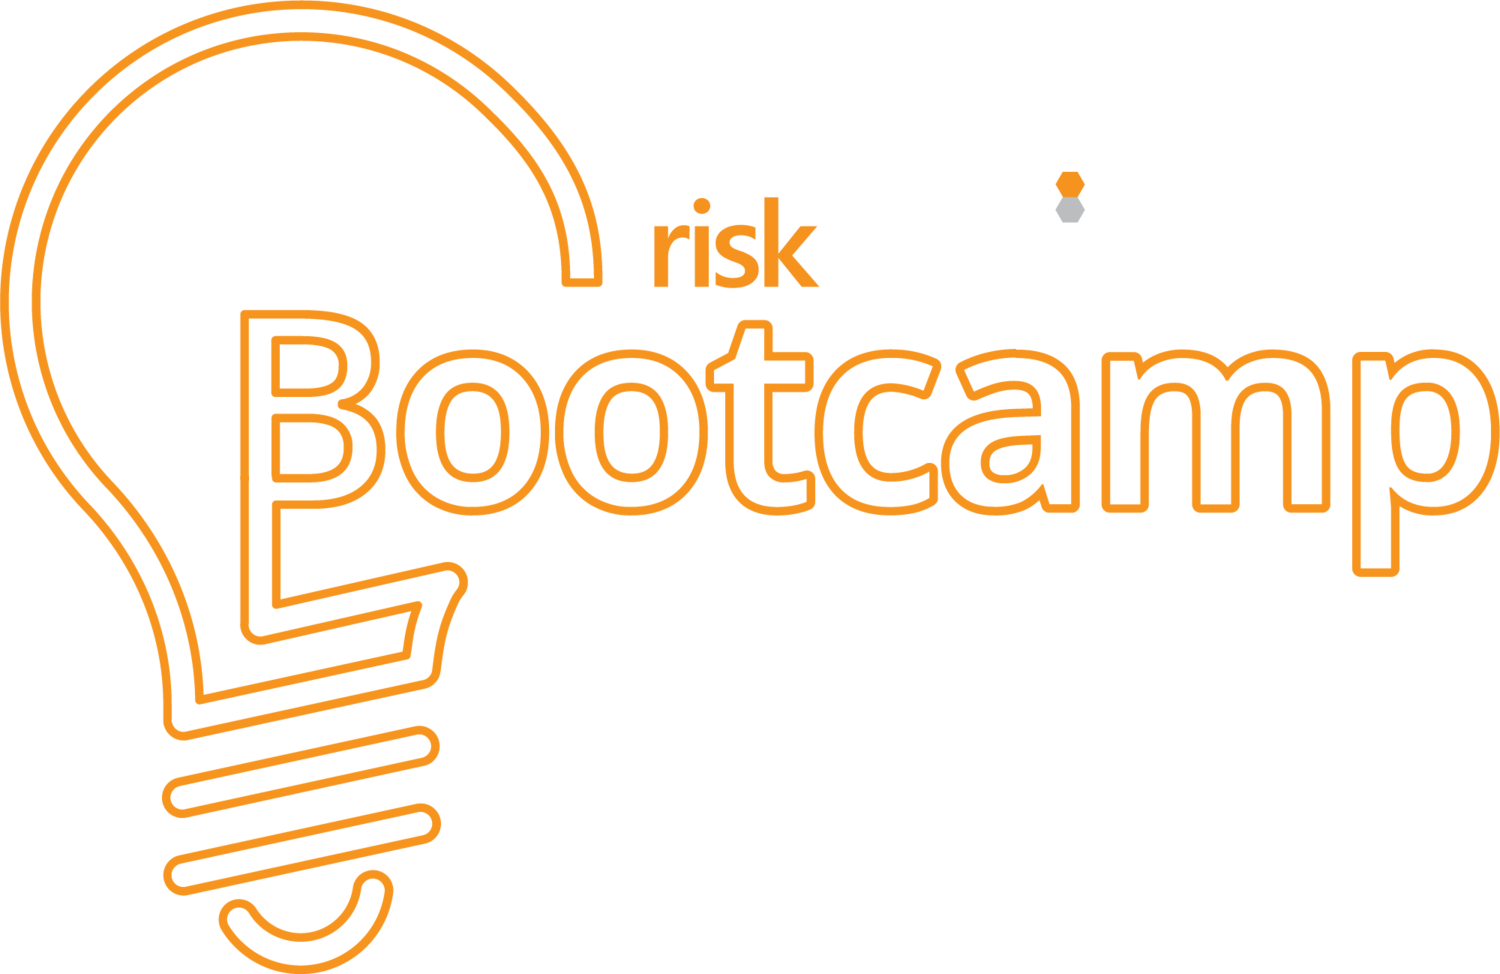 Riskalyze Bootcamp